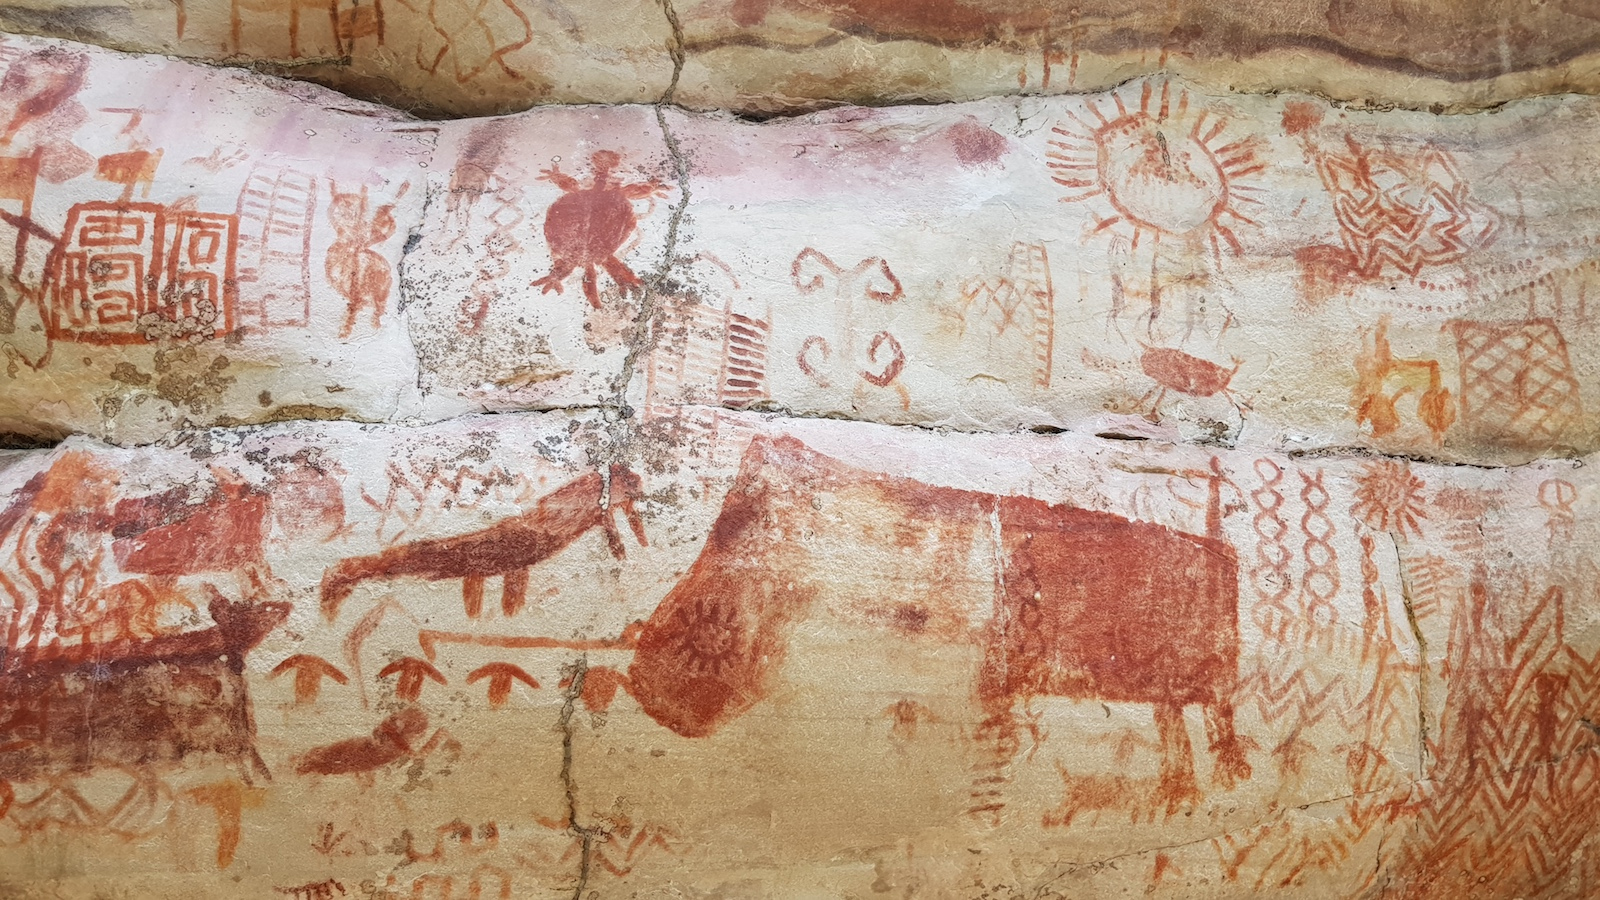 The Sistine Chapel of the Ancients: Archaeologists Discover 8 Miles of Art Painted on Rock Walls in the Amazon